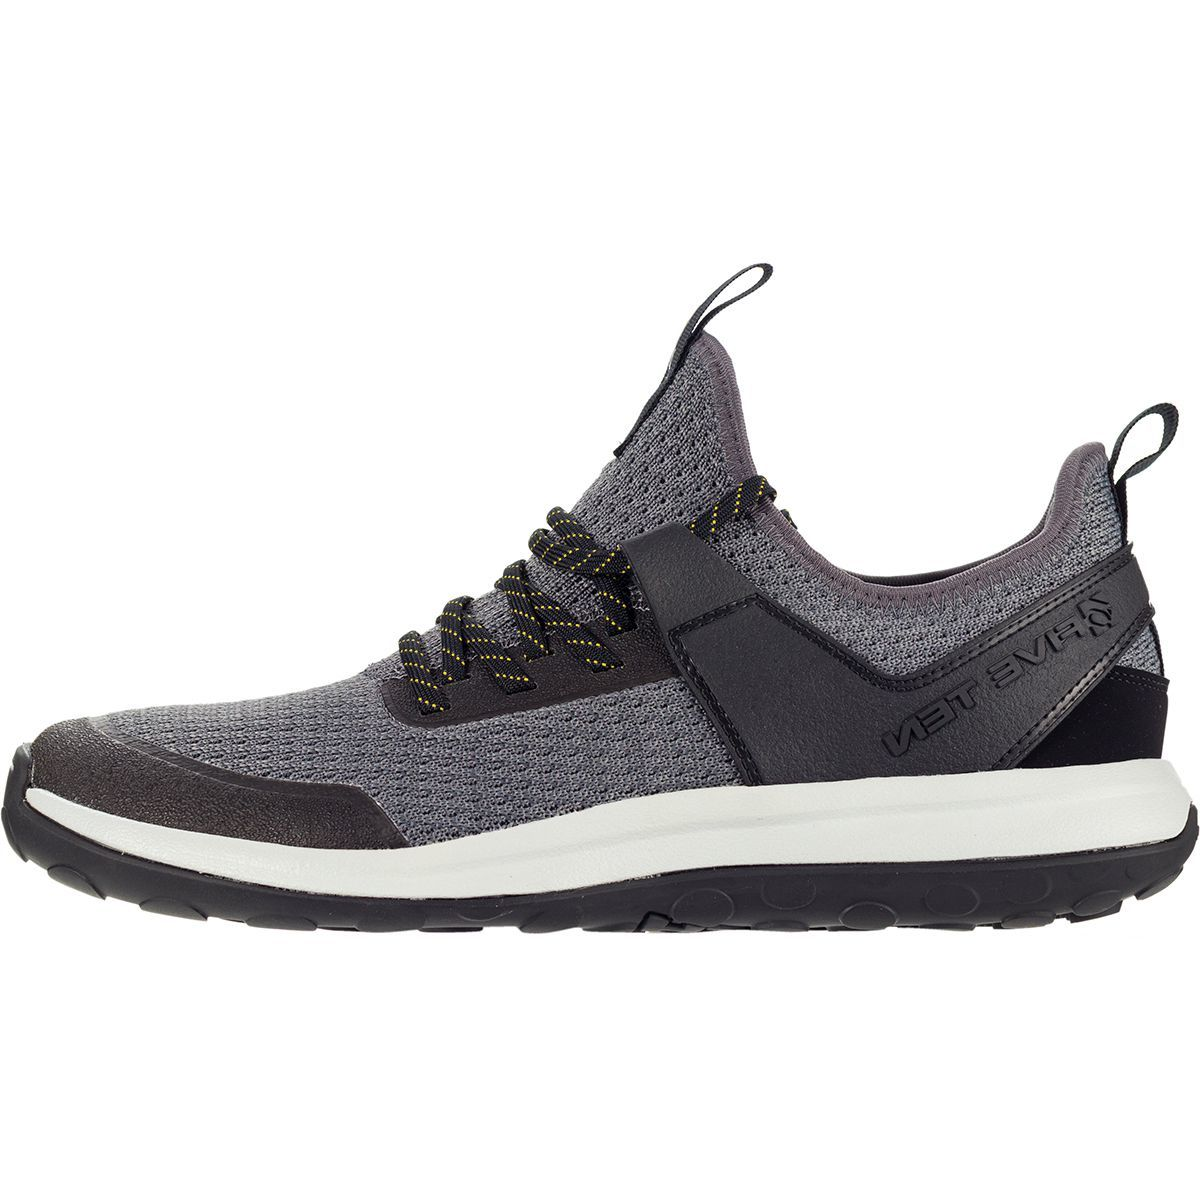 Five Ten Access Knit Shoe - Men's